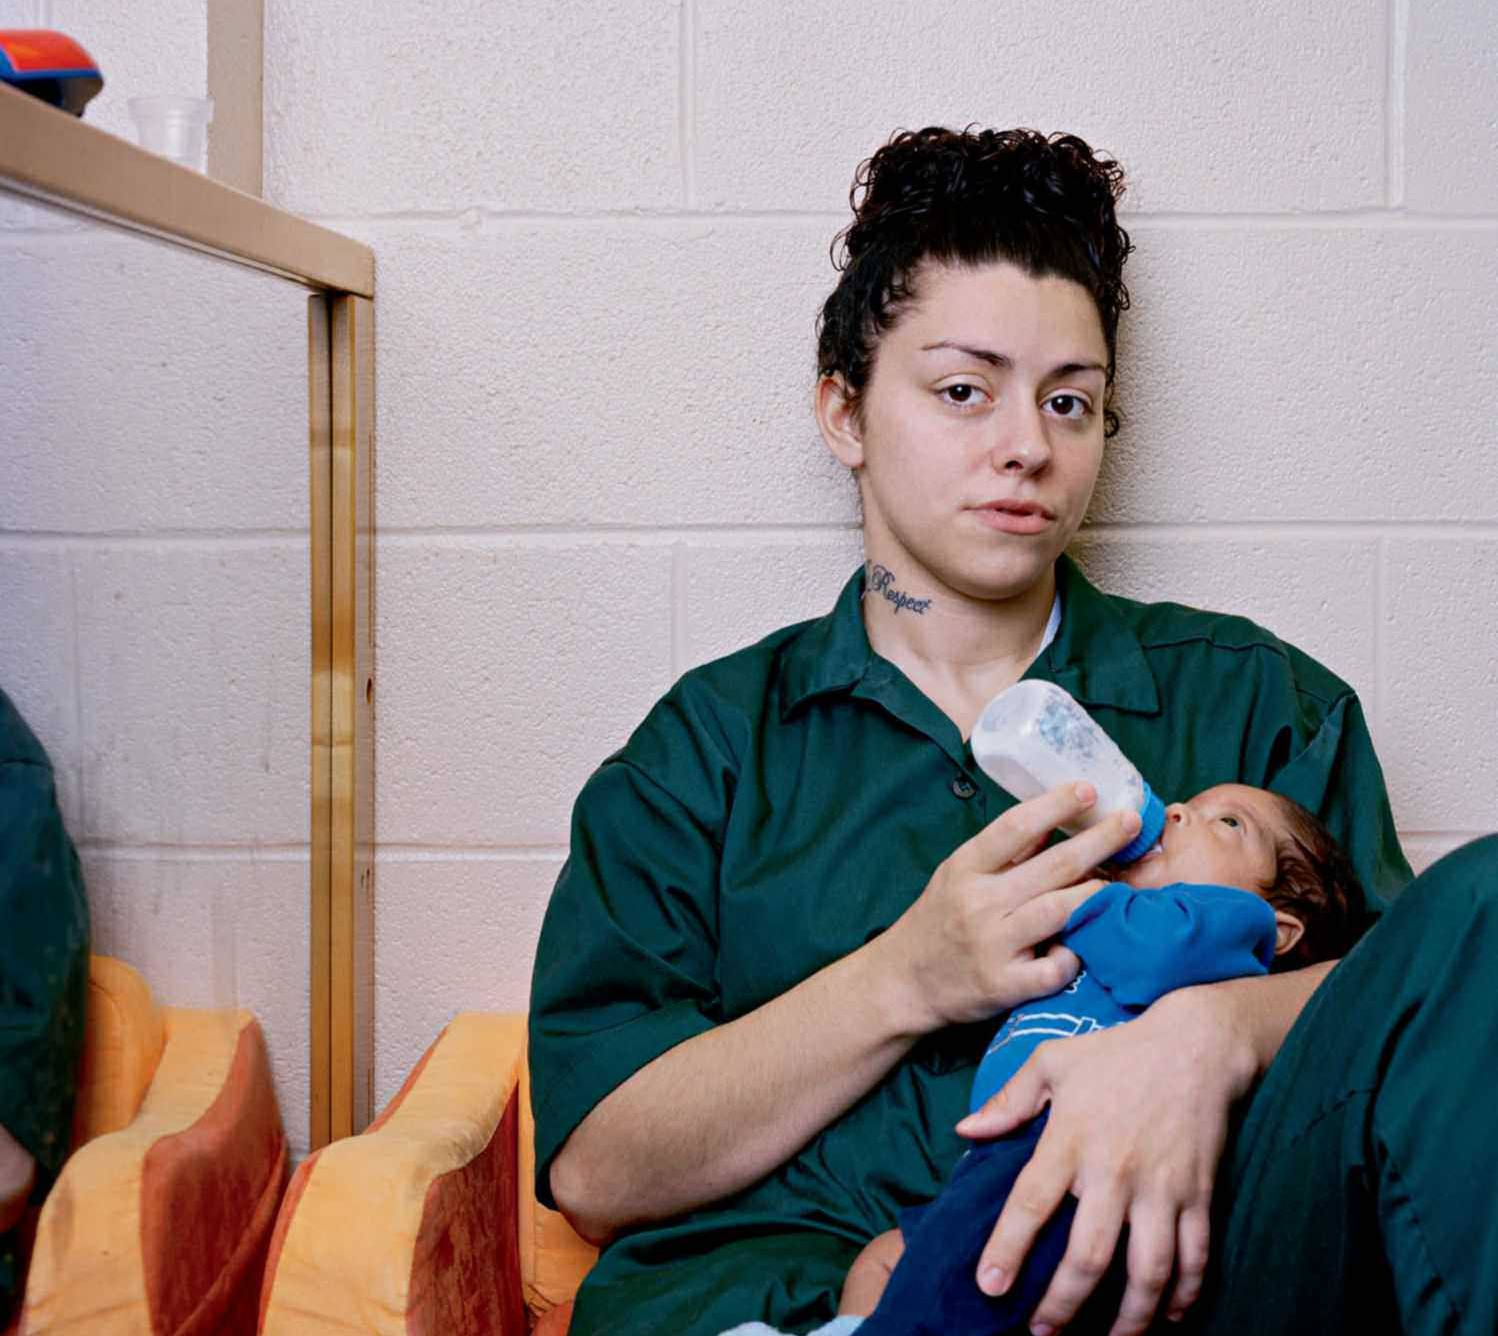 What Becomes Of Babies Born To Mothers Behind Bars?